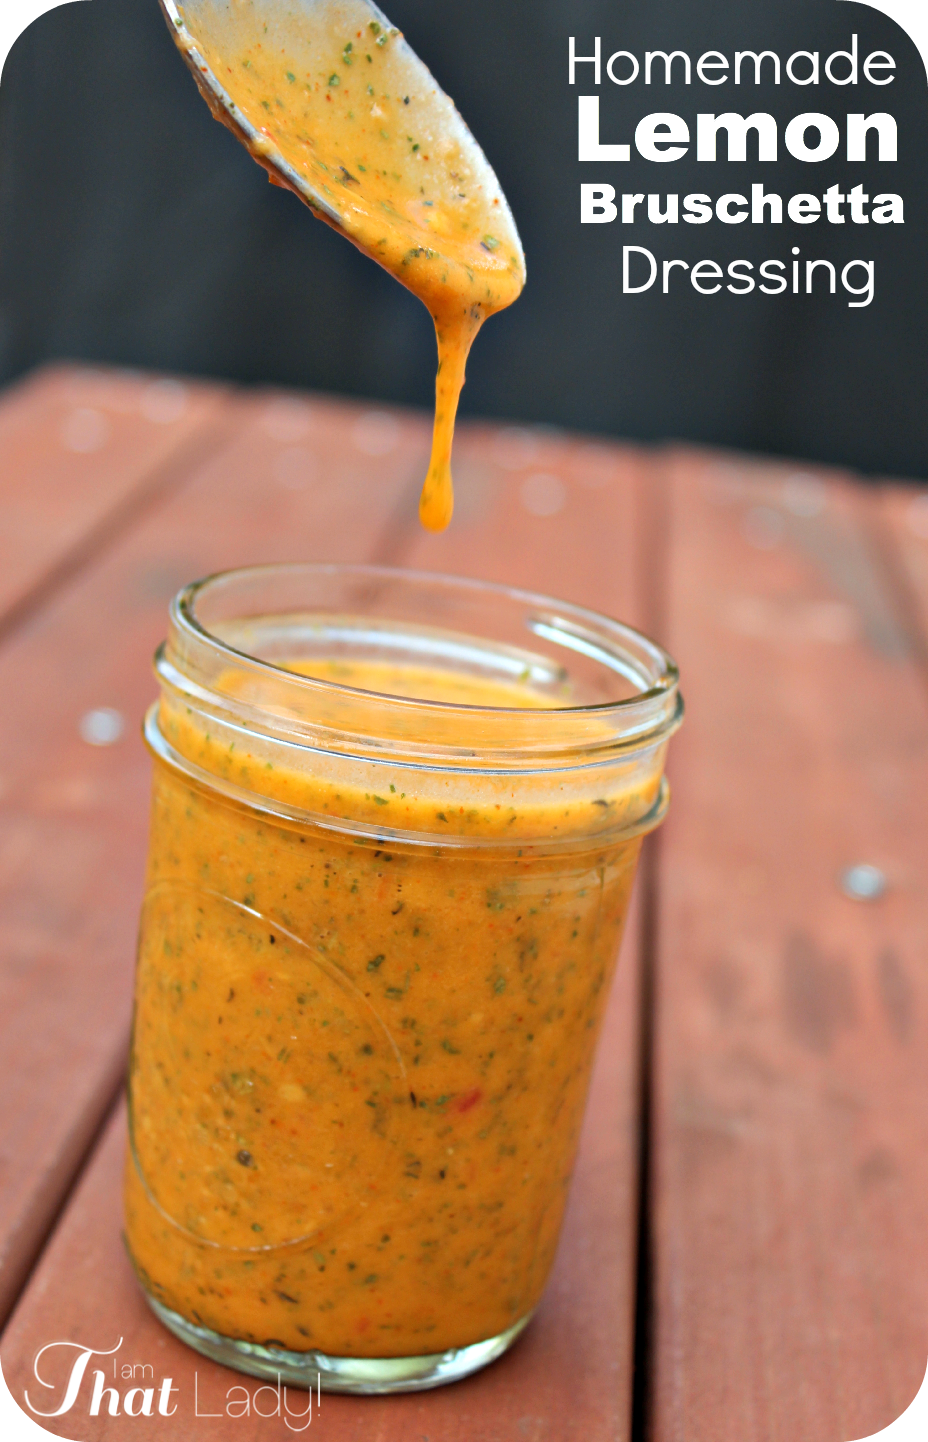 Homemade Lemon Bruschetta Salad Dressing Recipe